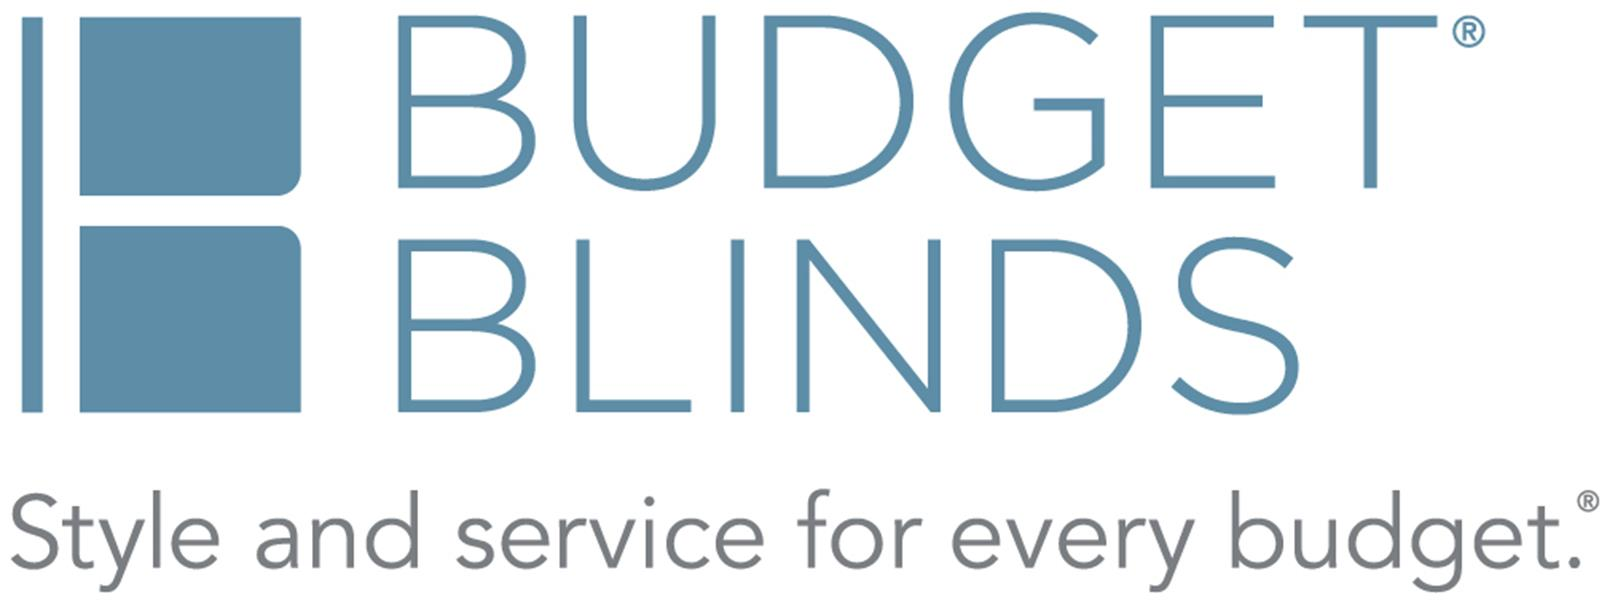 Budget Blinds Serving Salem, Roanoke, Botetourt & the NRV